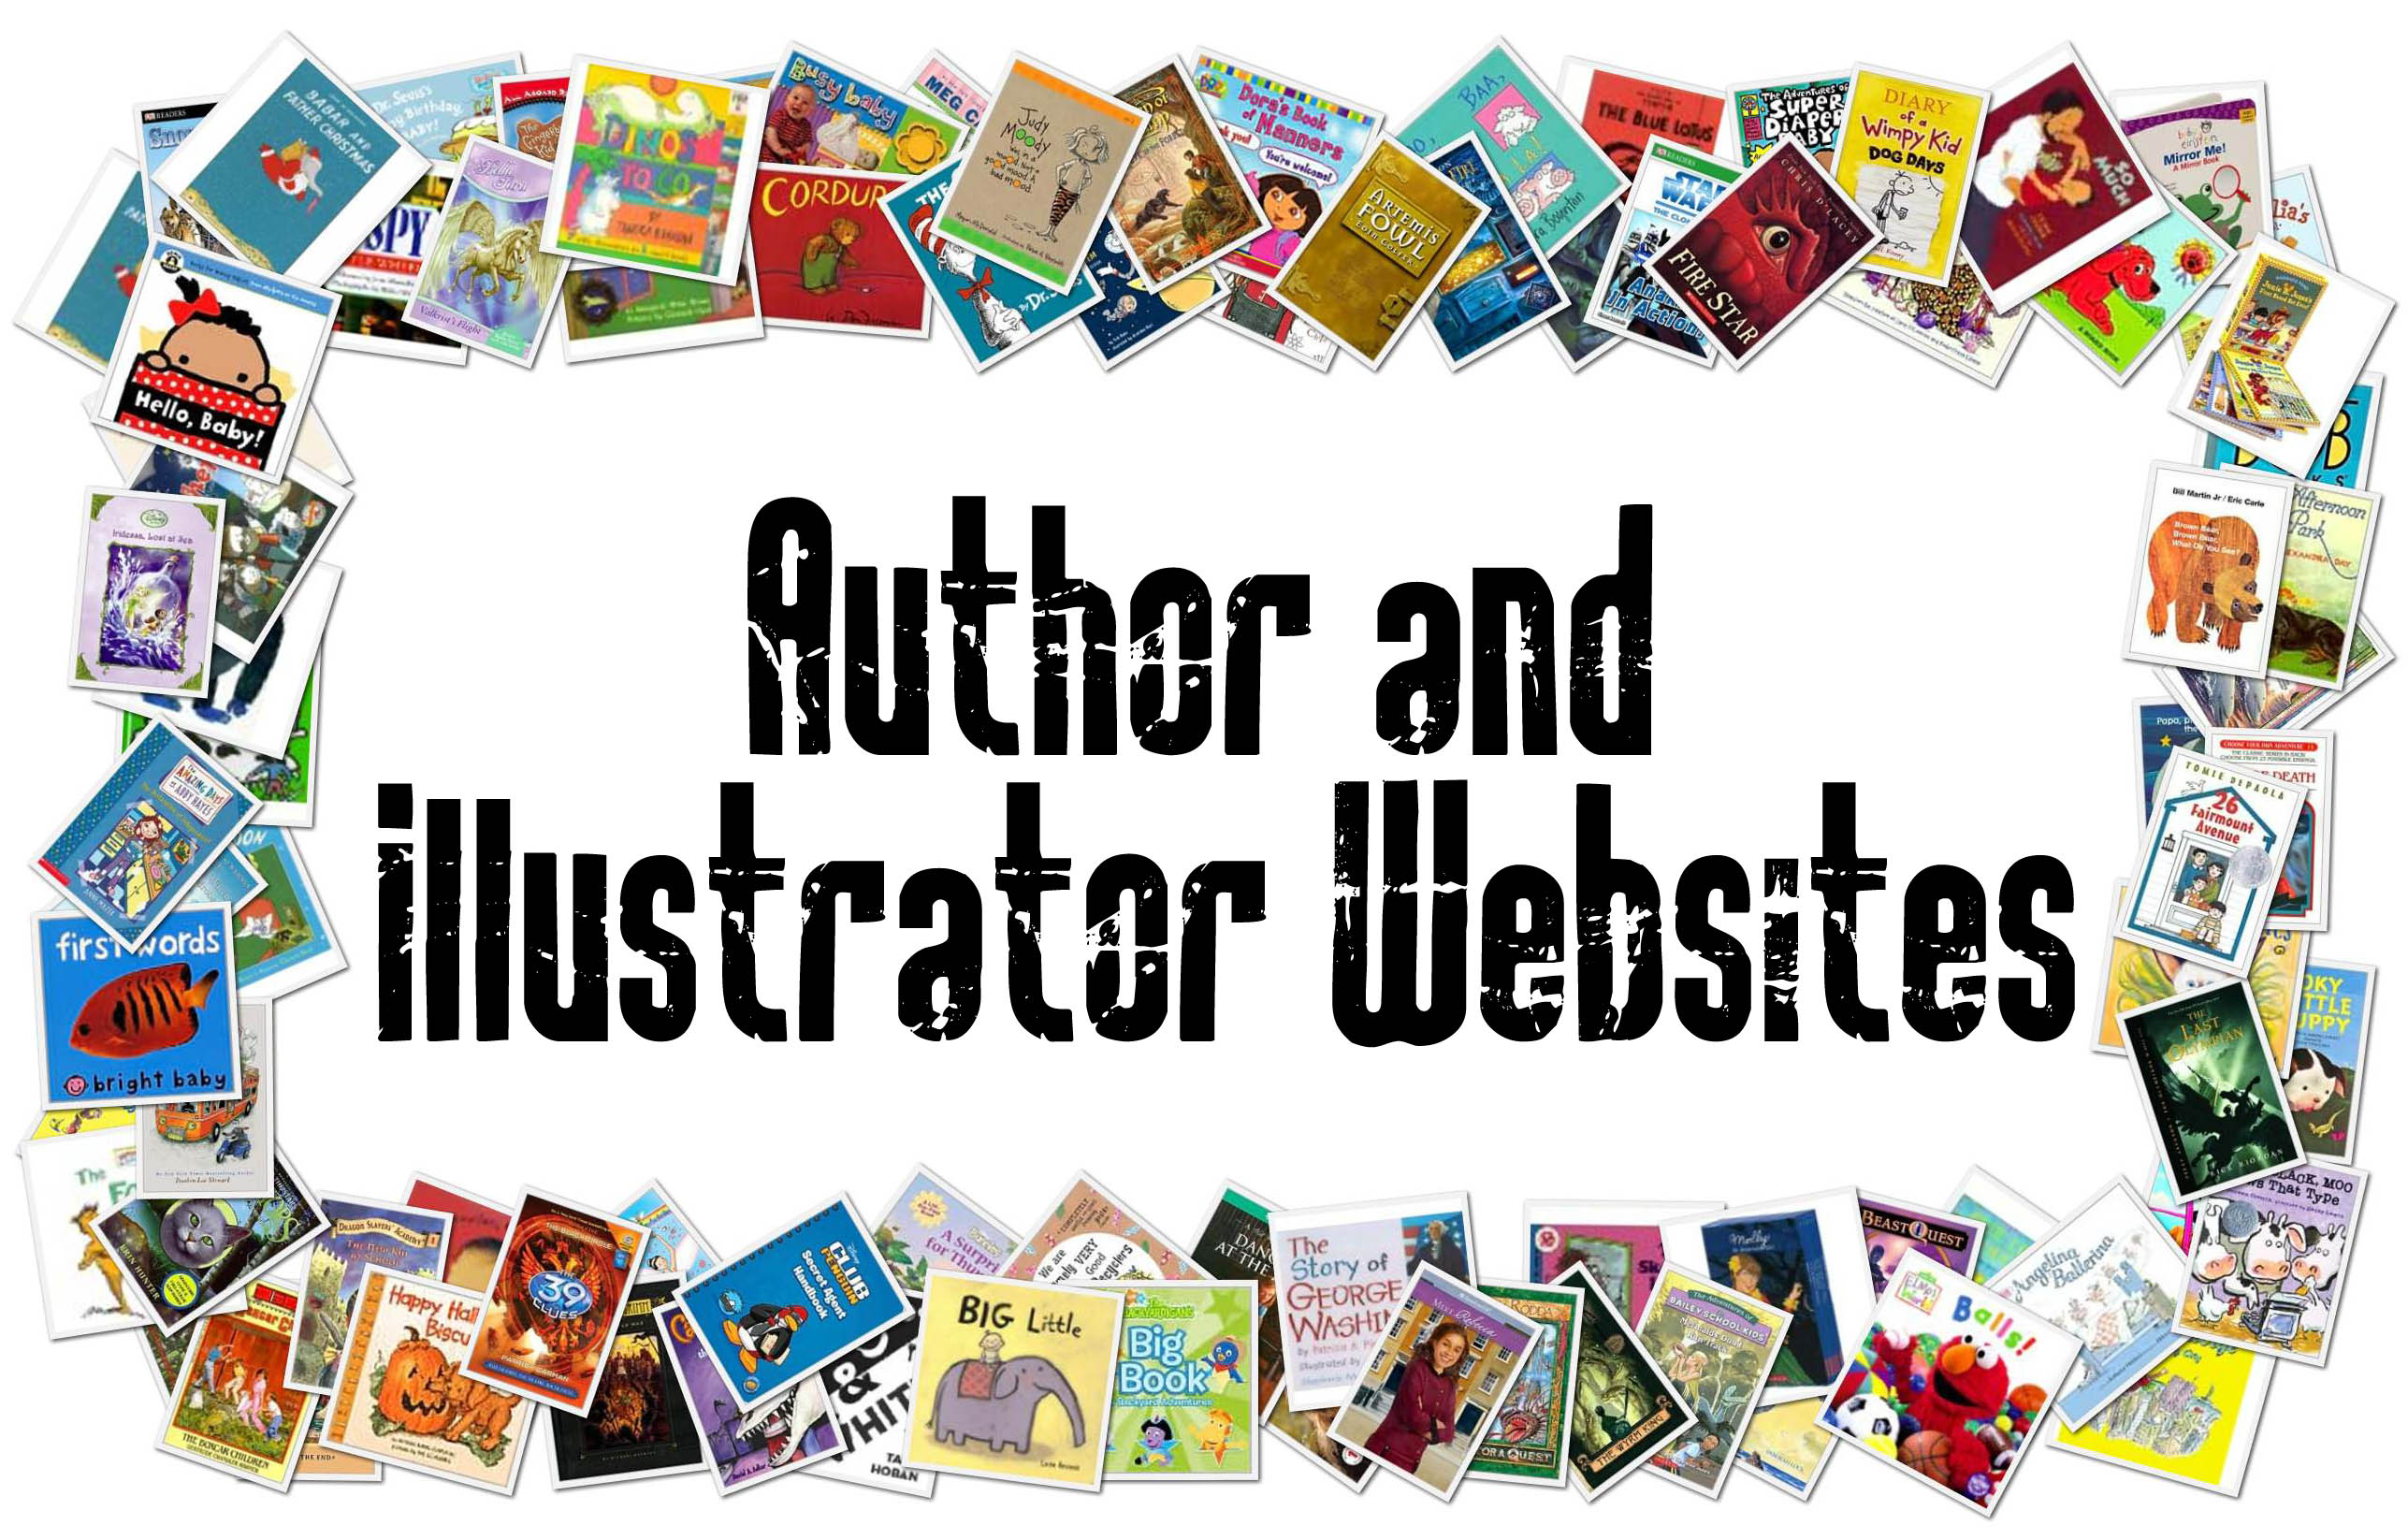 author and illustrator websites